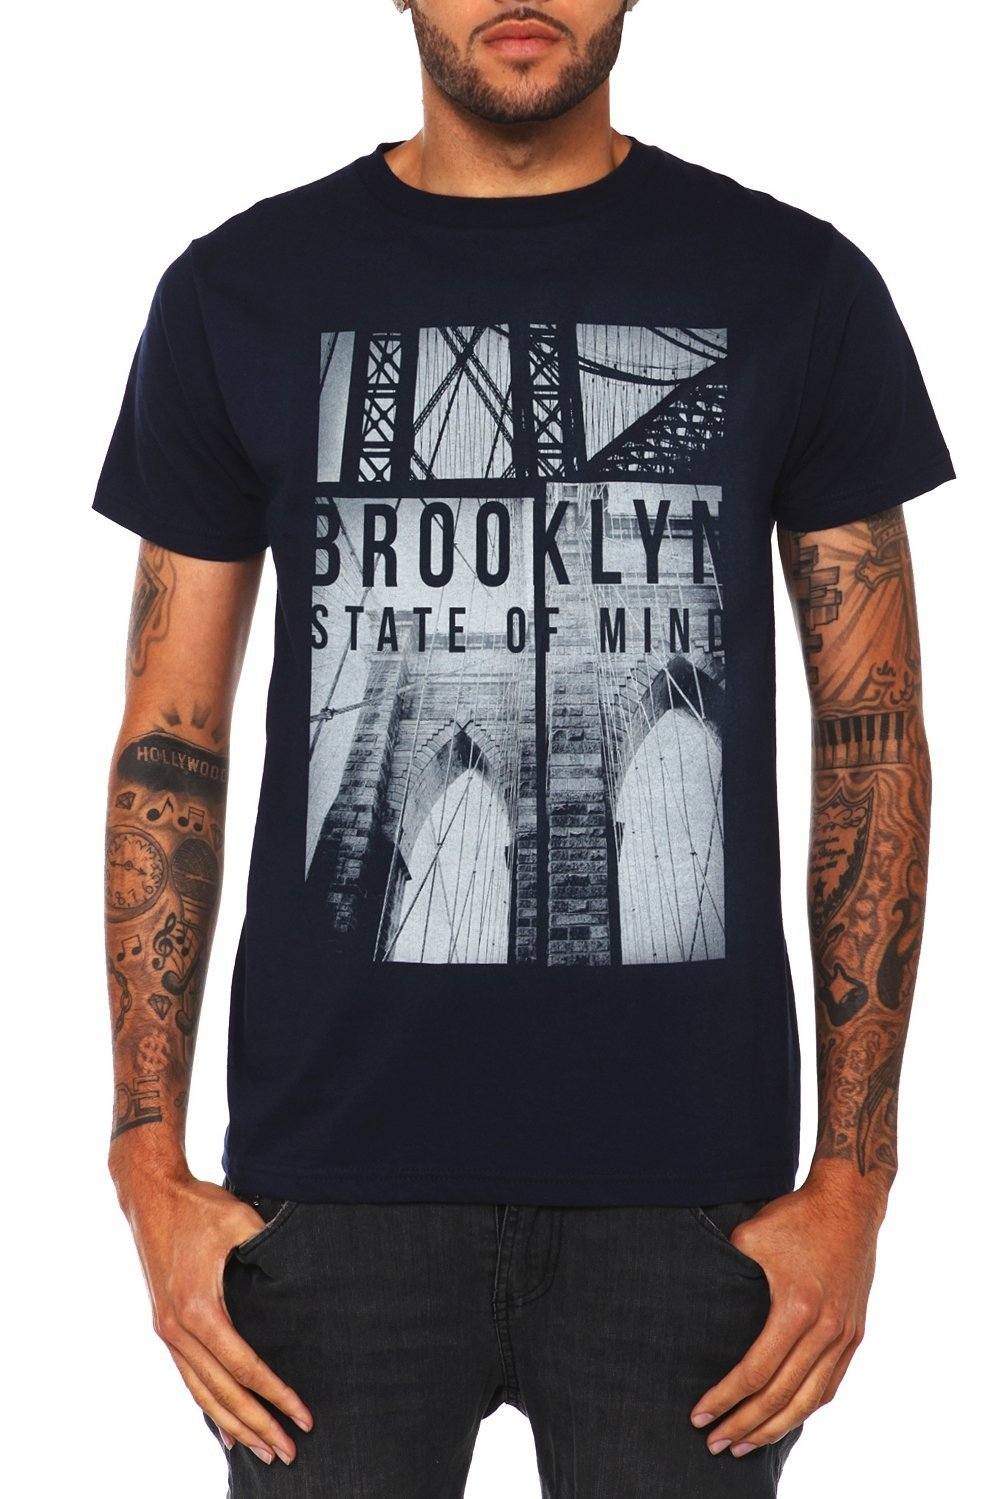 Brooklyn State of Mind